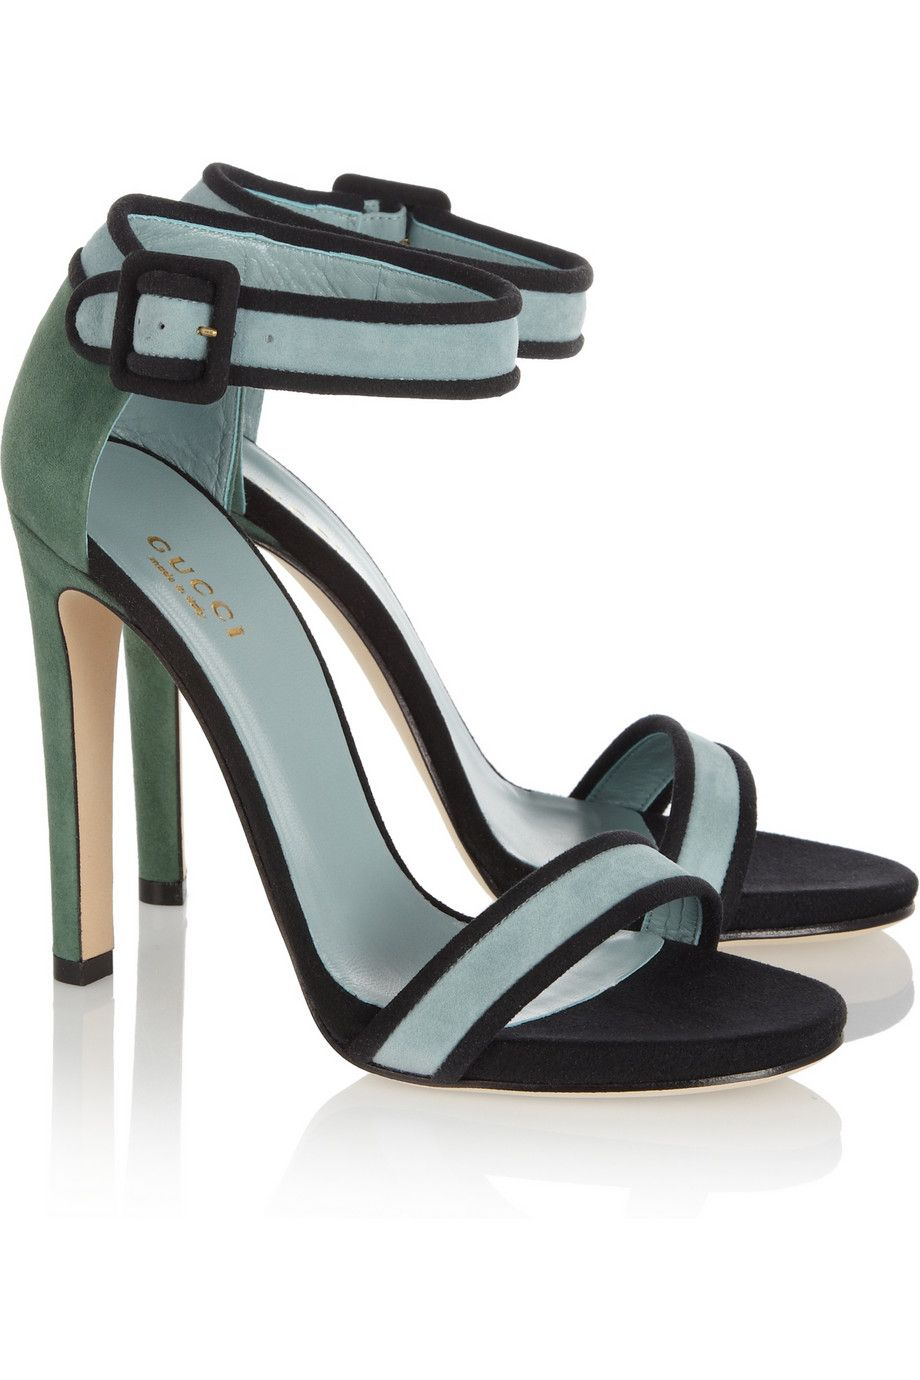 716c941be06 Gucci color-block suede sandals in light blue suede trimmed in black with  contrasting dark green heel-gorgeous summer sandal